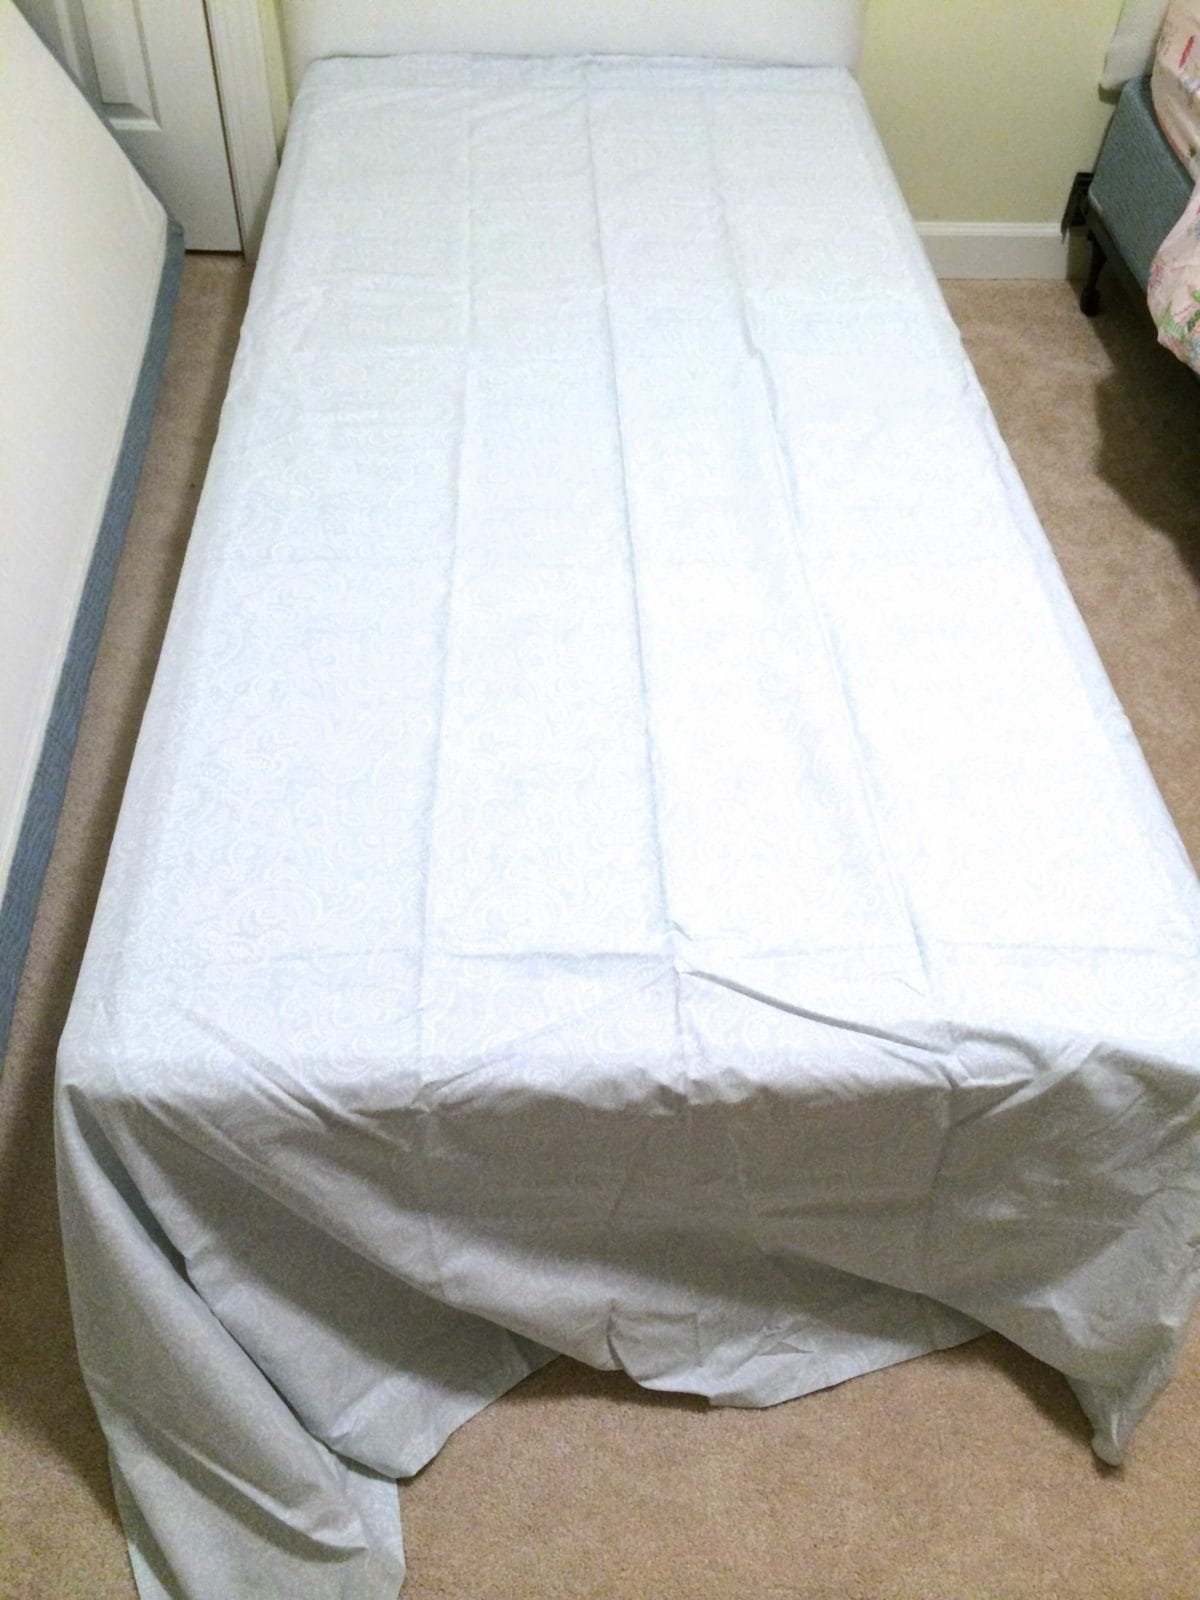 No Sew Bedskirt Tutorial Mind Blowingly Simple Designer Trapped To Find The Best Deal How Fold Fitted Sheets Diagram Right Now Img 3785